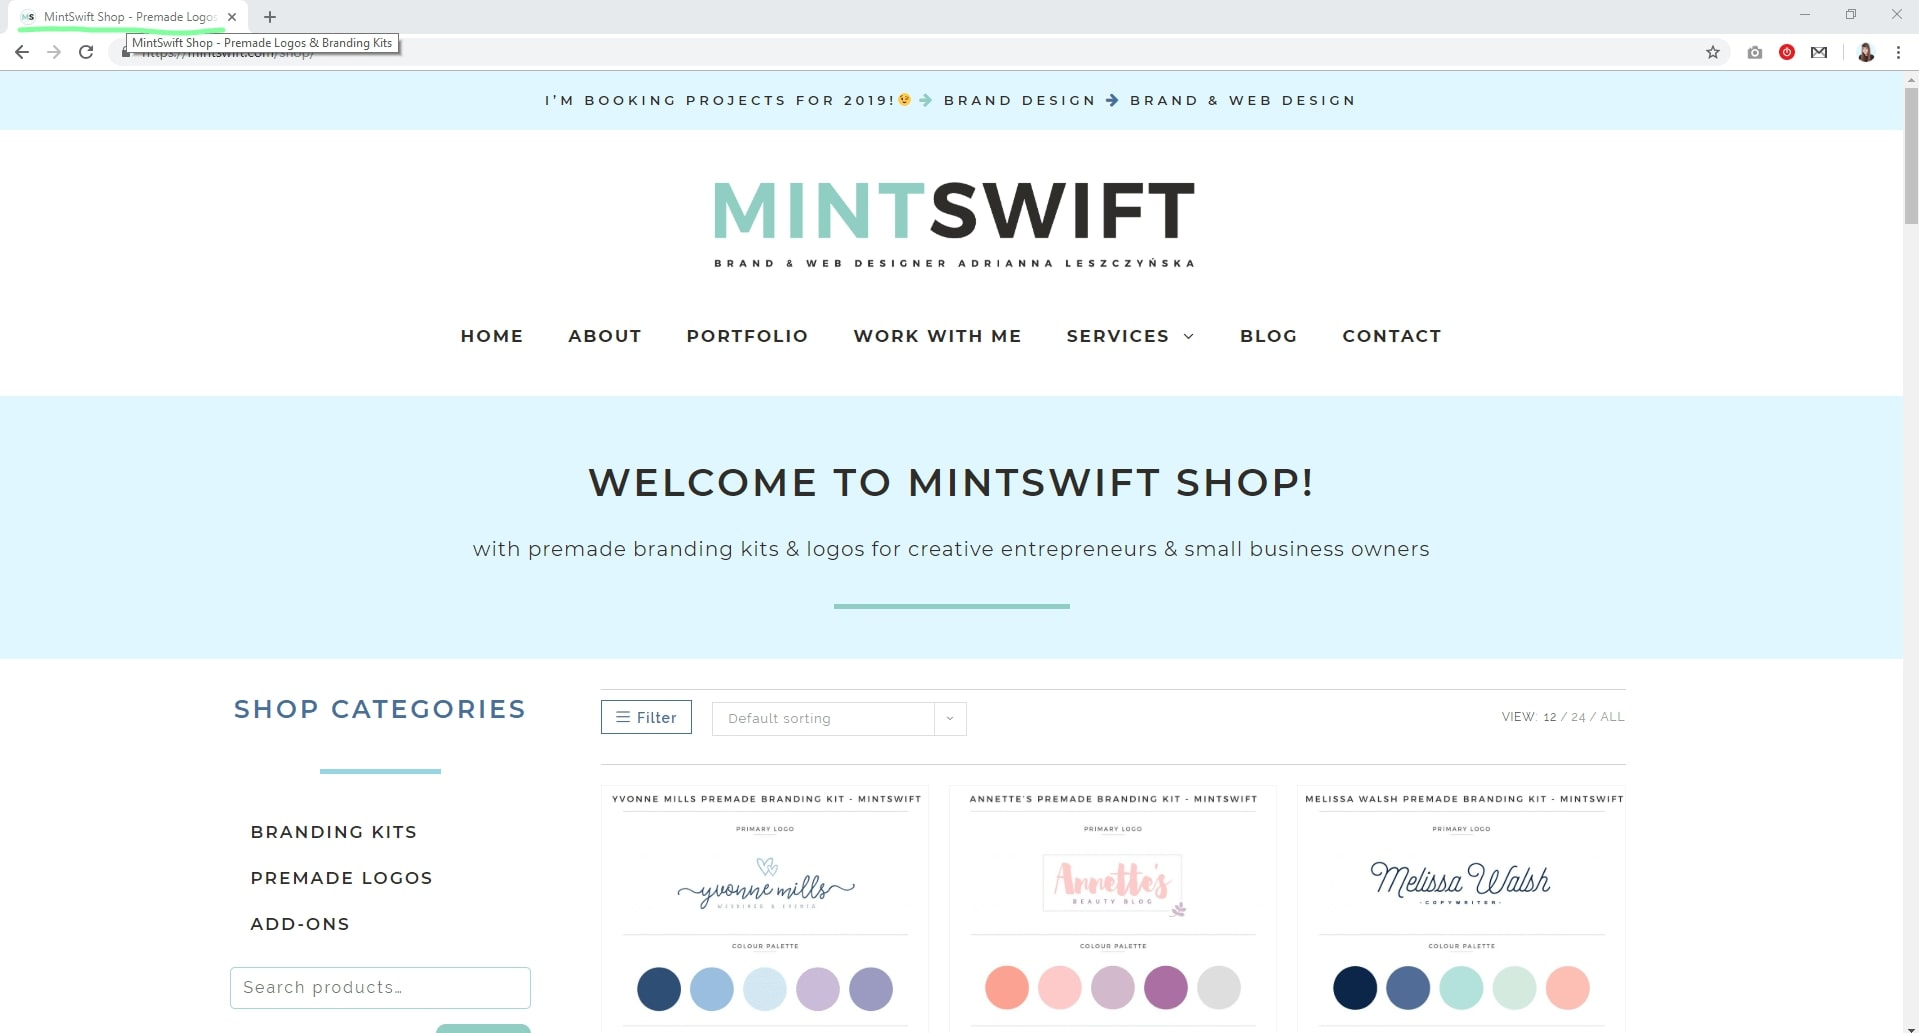 How to Change the Name of Your WooCommerce Shop from Products Archive to Shop - 3.1 - MintSwift